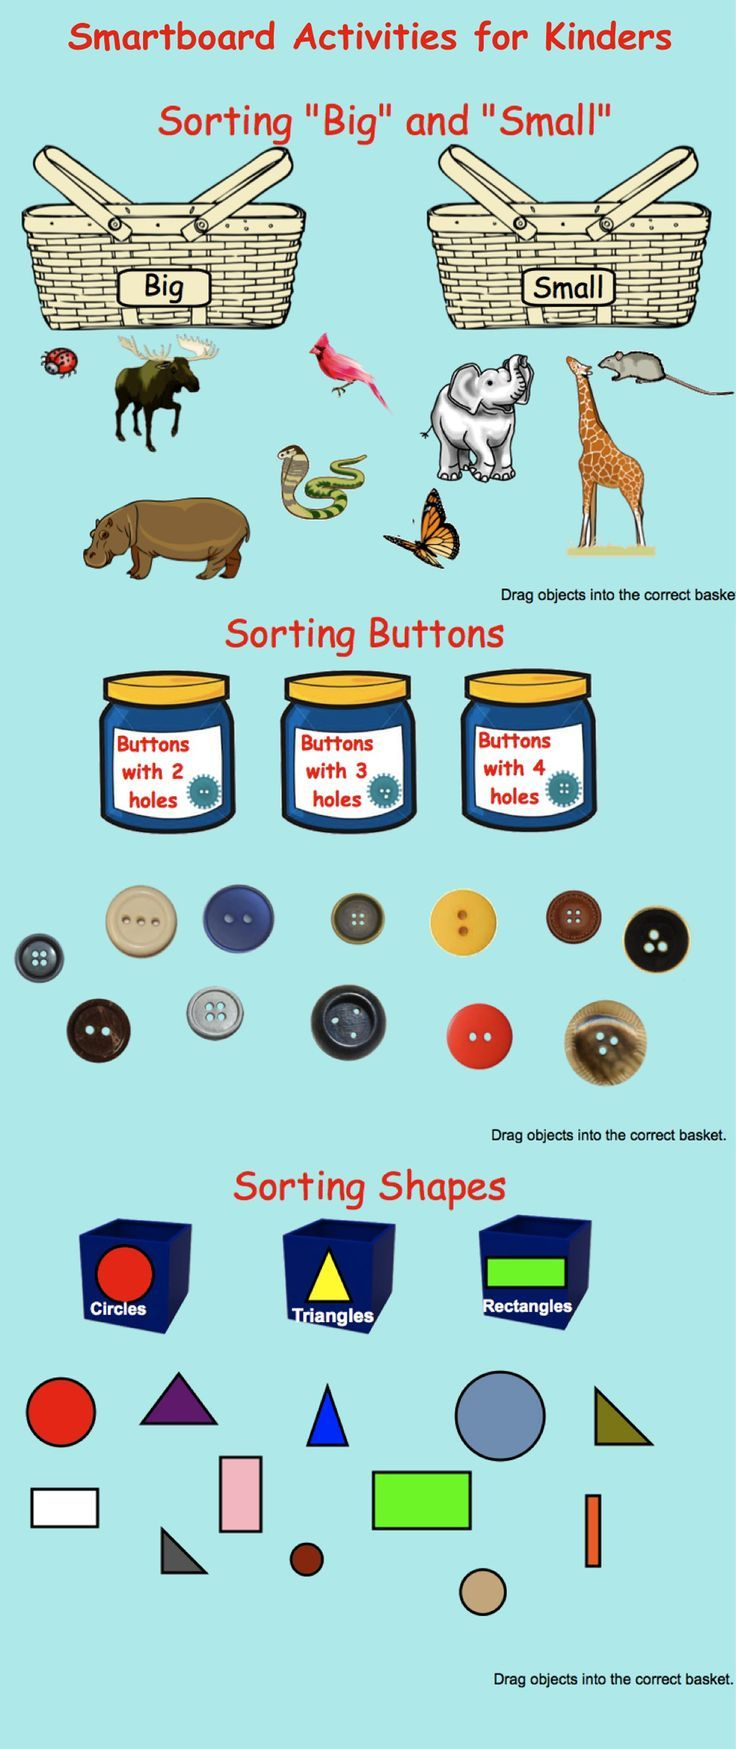 8 Smartboard Kindergarten Sorting Activities. - Can I learn to program something to use with our e-beam?: